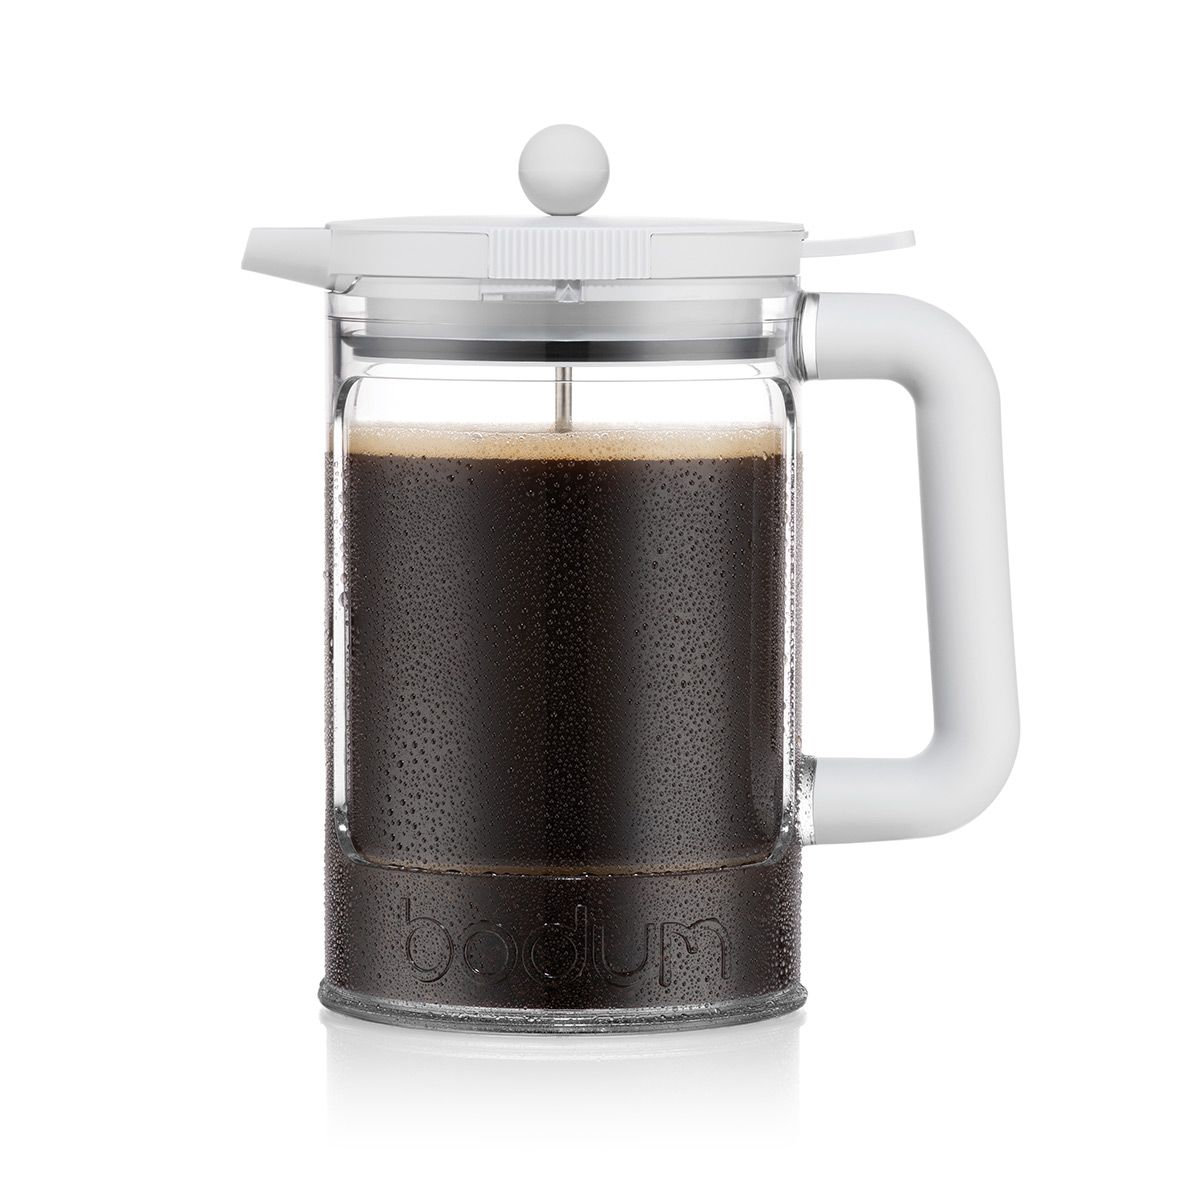 Cold coffee brewer Bodum